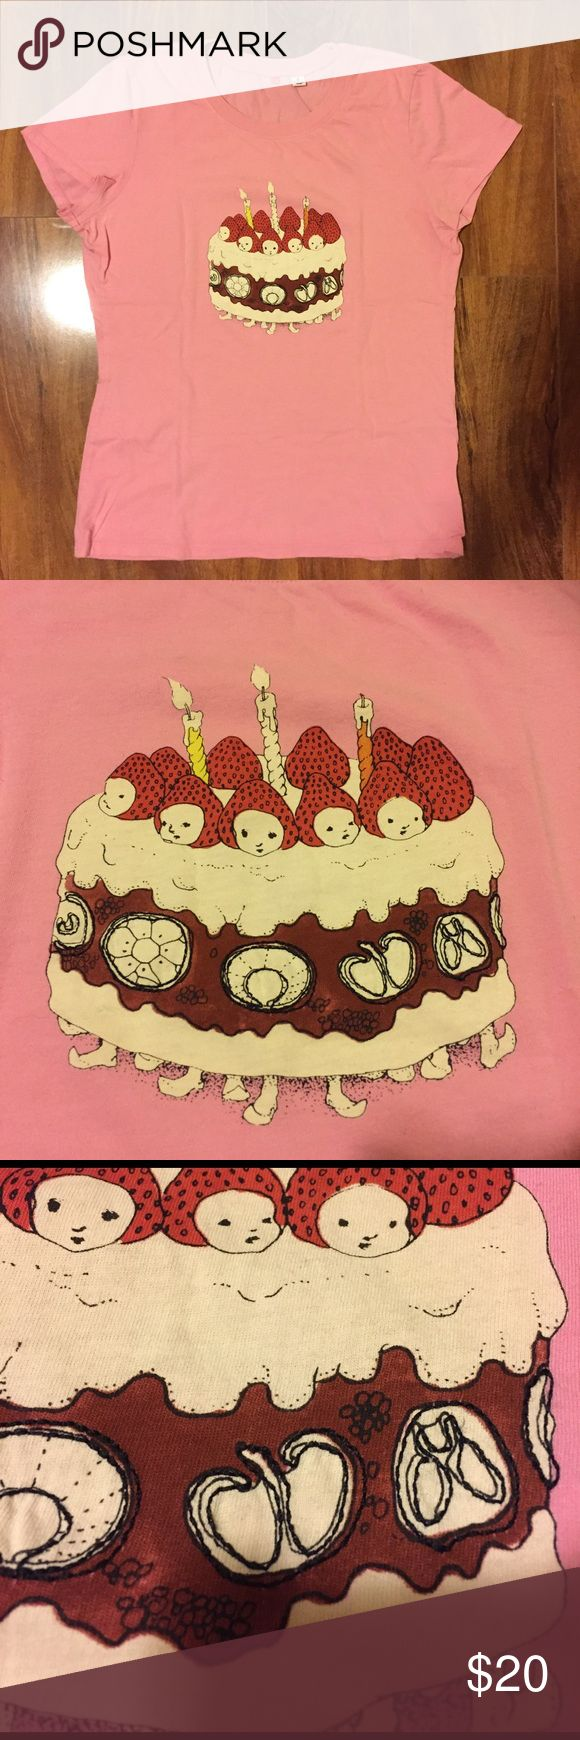 Uniqlo Pink Strawberry Cake T-shirt Size S Uniqlo Tshirt with a cute print by some Japanese artist.  Some parts of the cake has black stitches. Very pink and cute print. Uniqlo Tops Tees - Short Sleeve